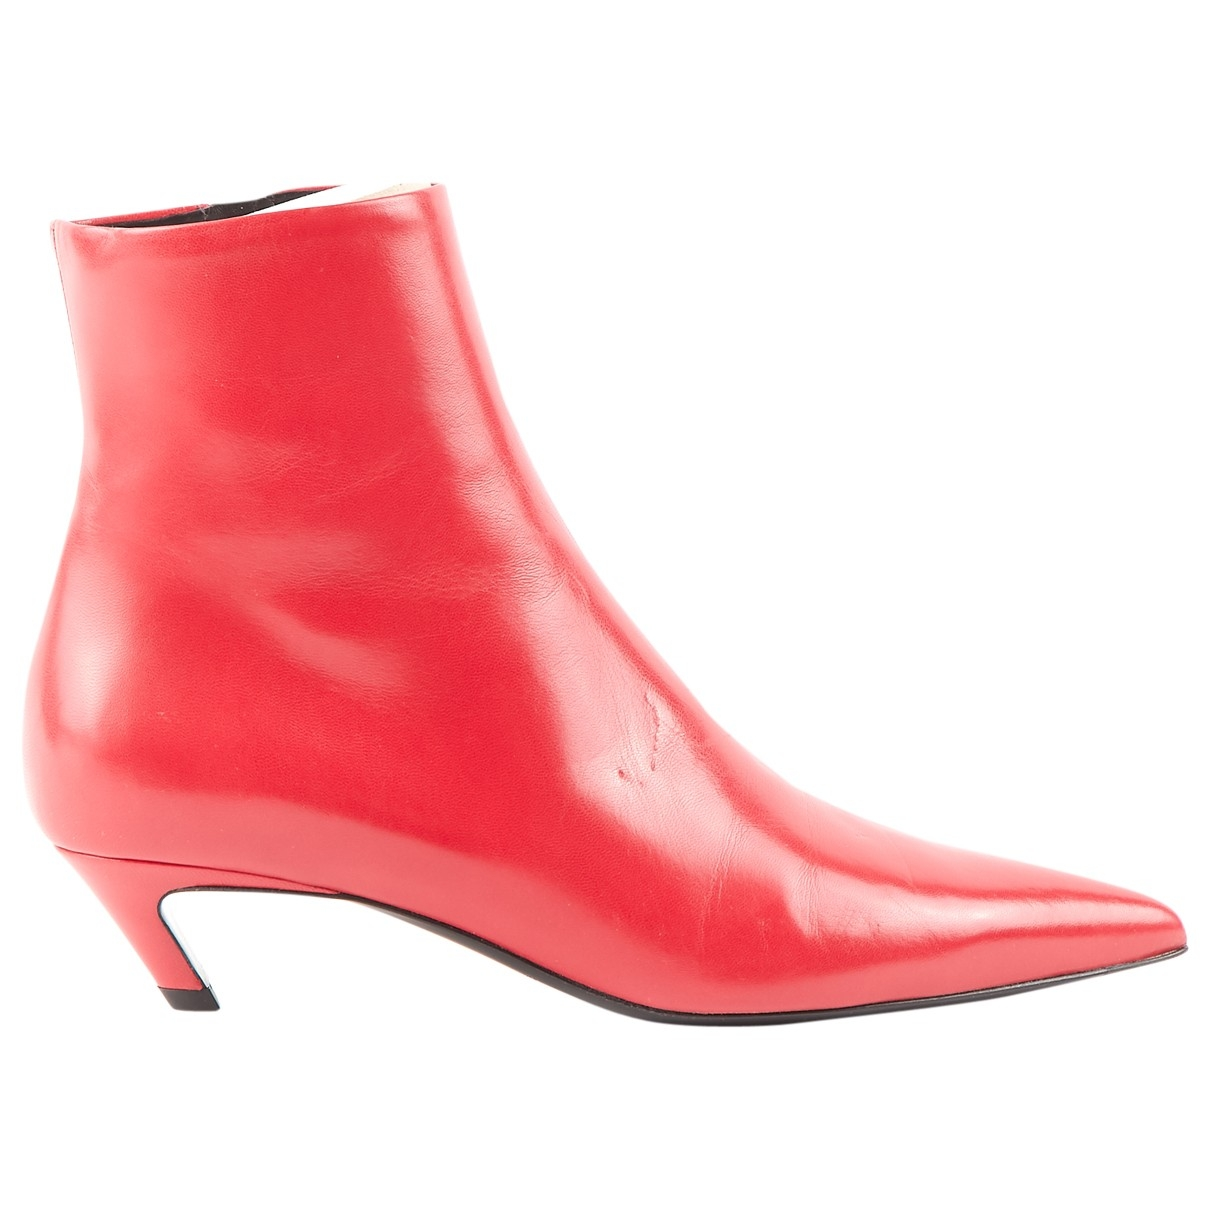 Balenciaga \N Red Leather Ankle boots for Women 38 EU